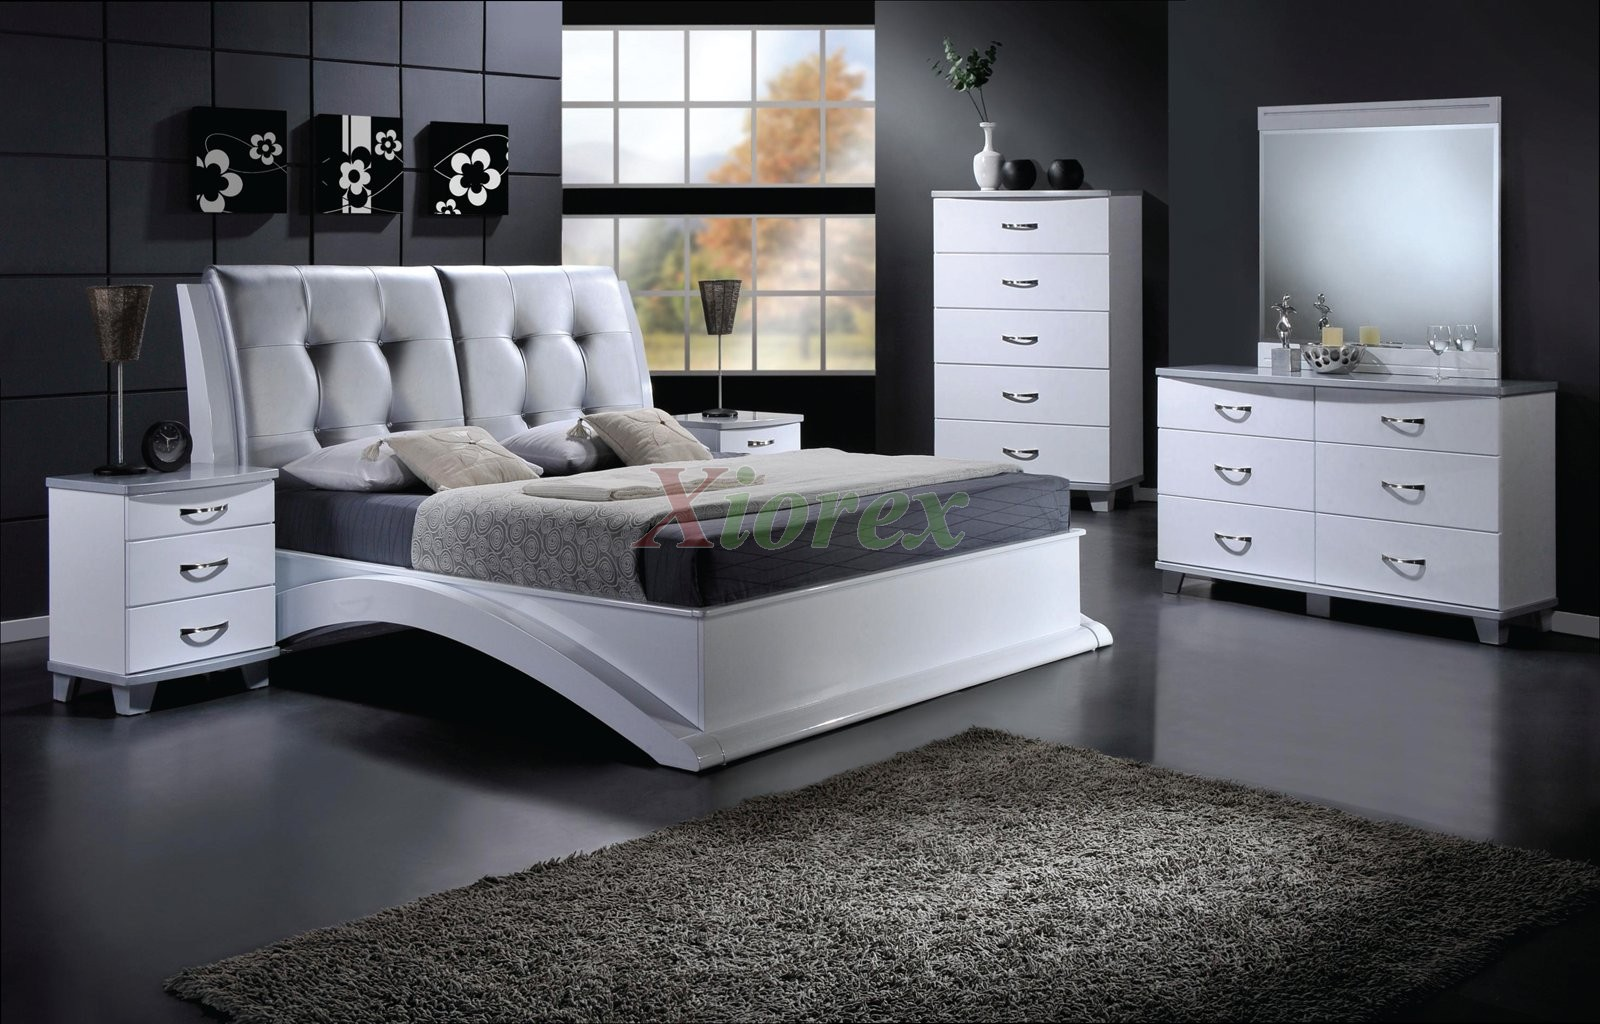 Nice Platform Bedroom Furniture Set With Leather Headboard 145 | Xiorex